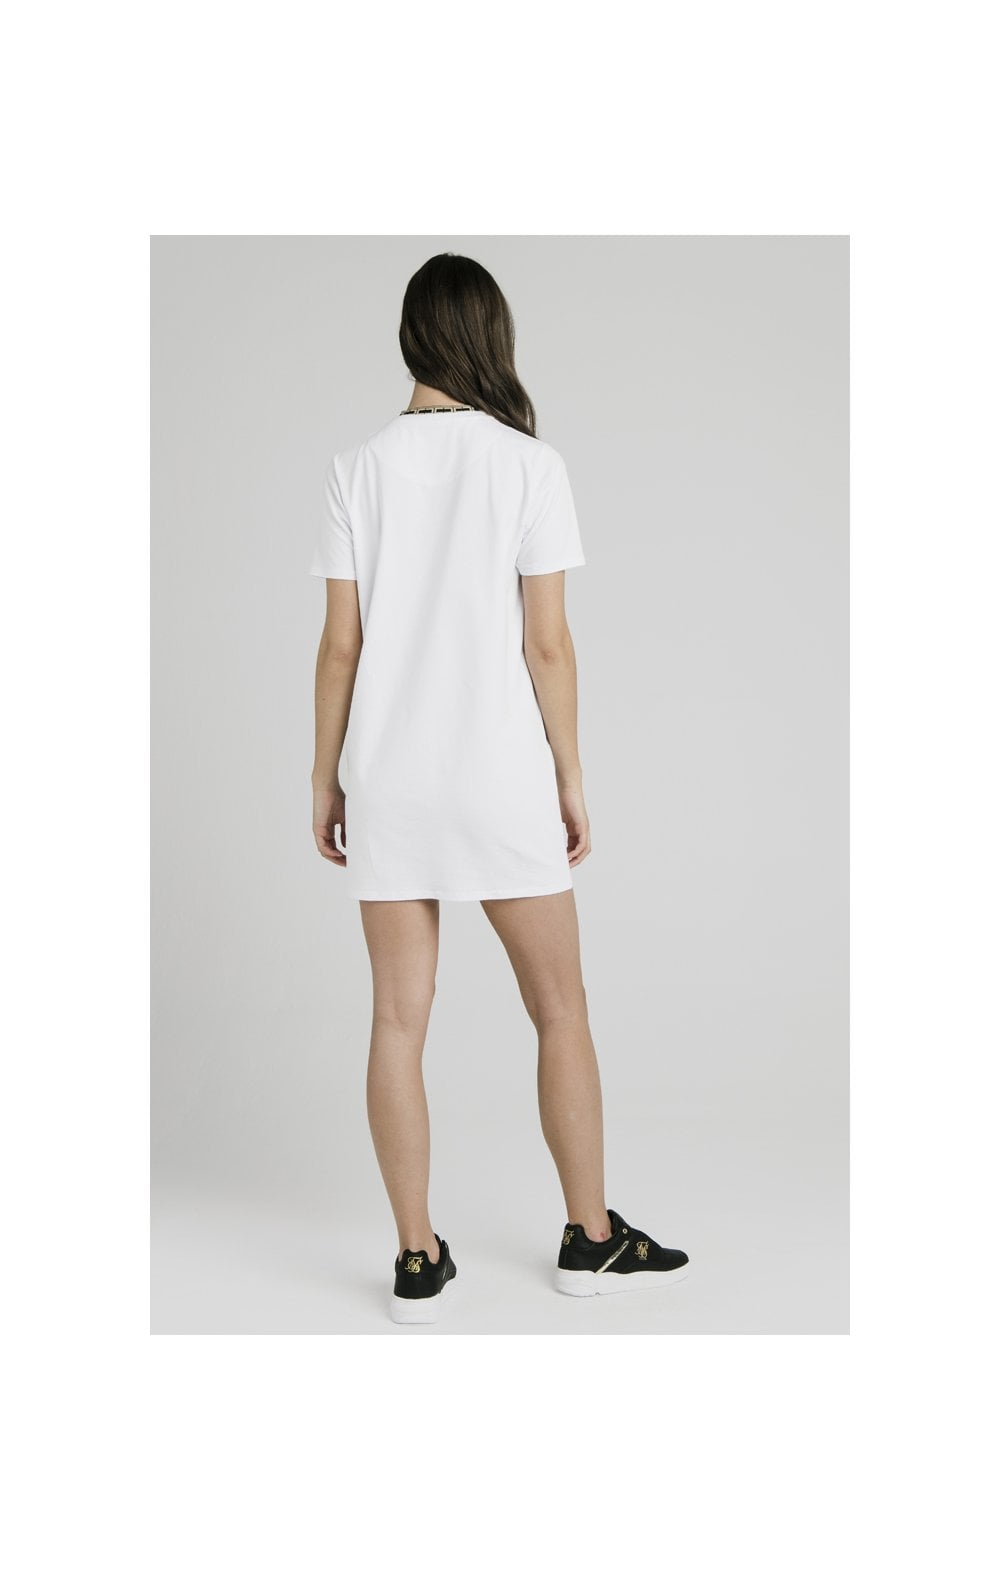 Load image into Gallery viewer, SikSilk Tape Collar T-Shirt Dress - White (5)